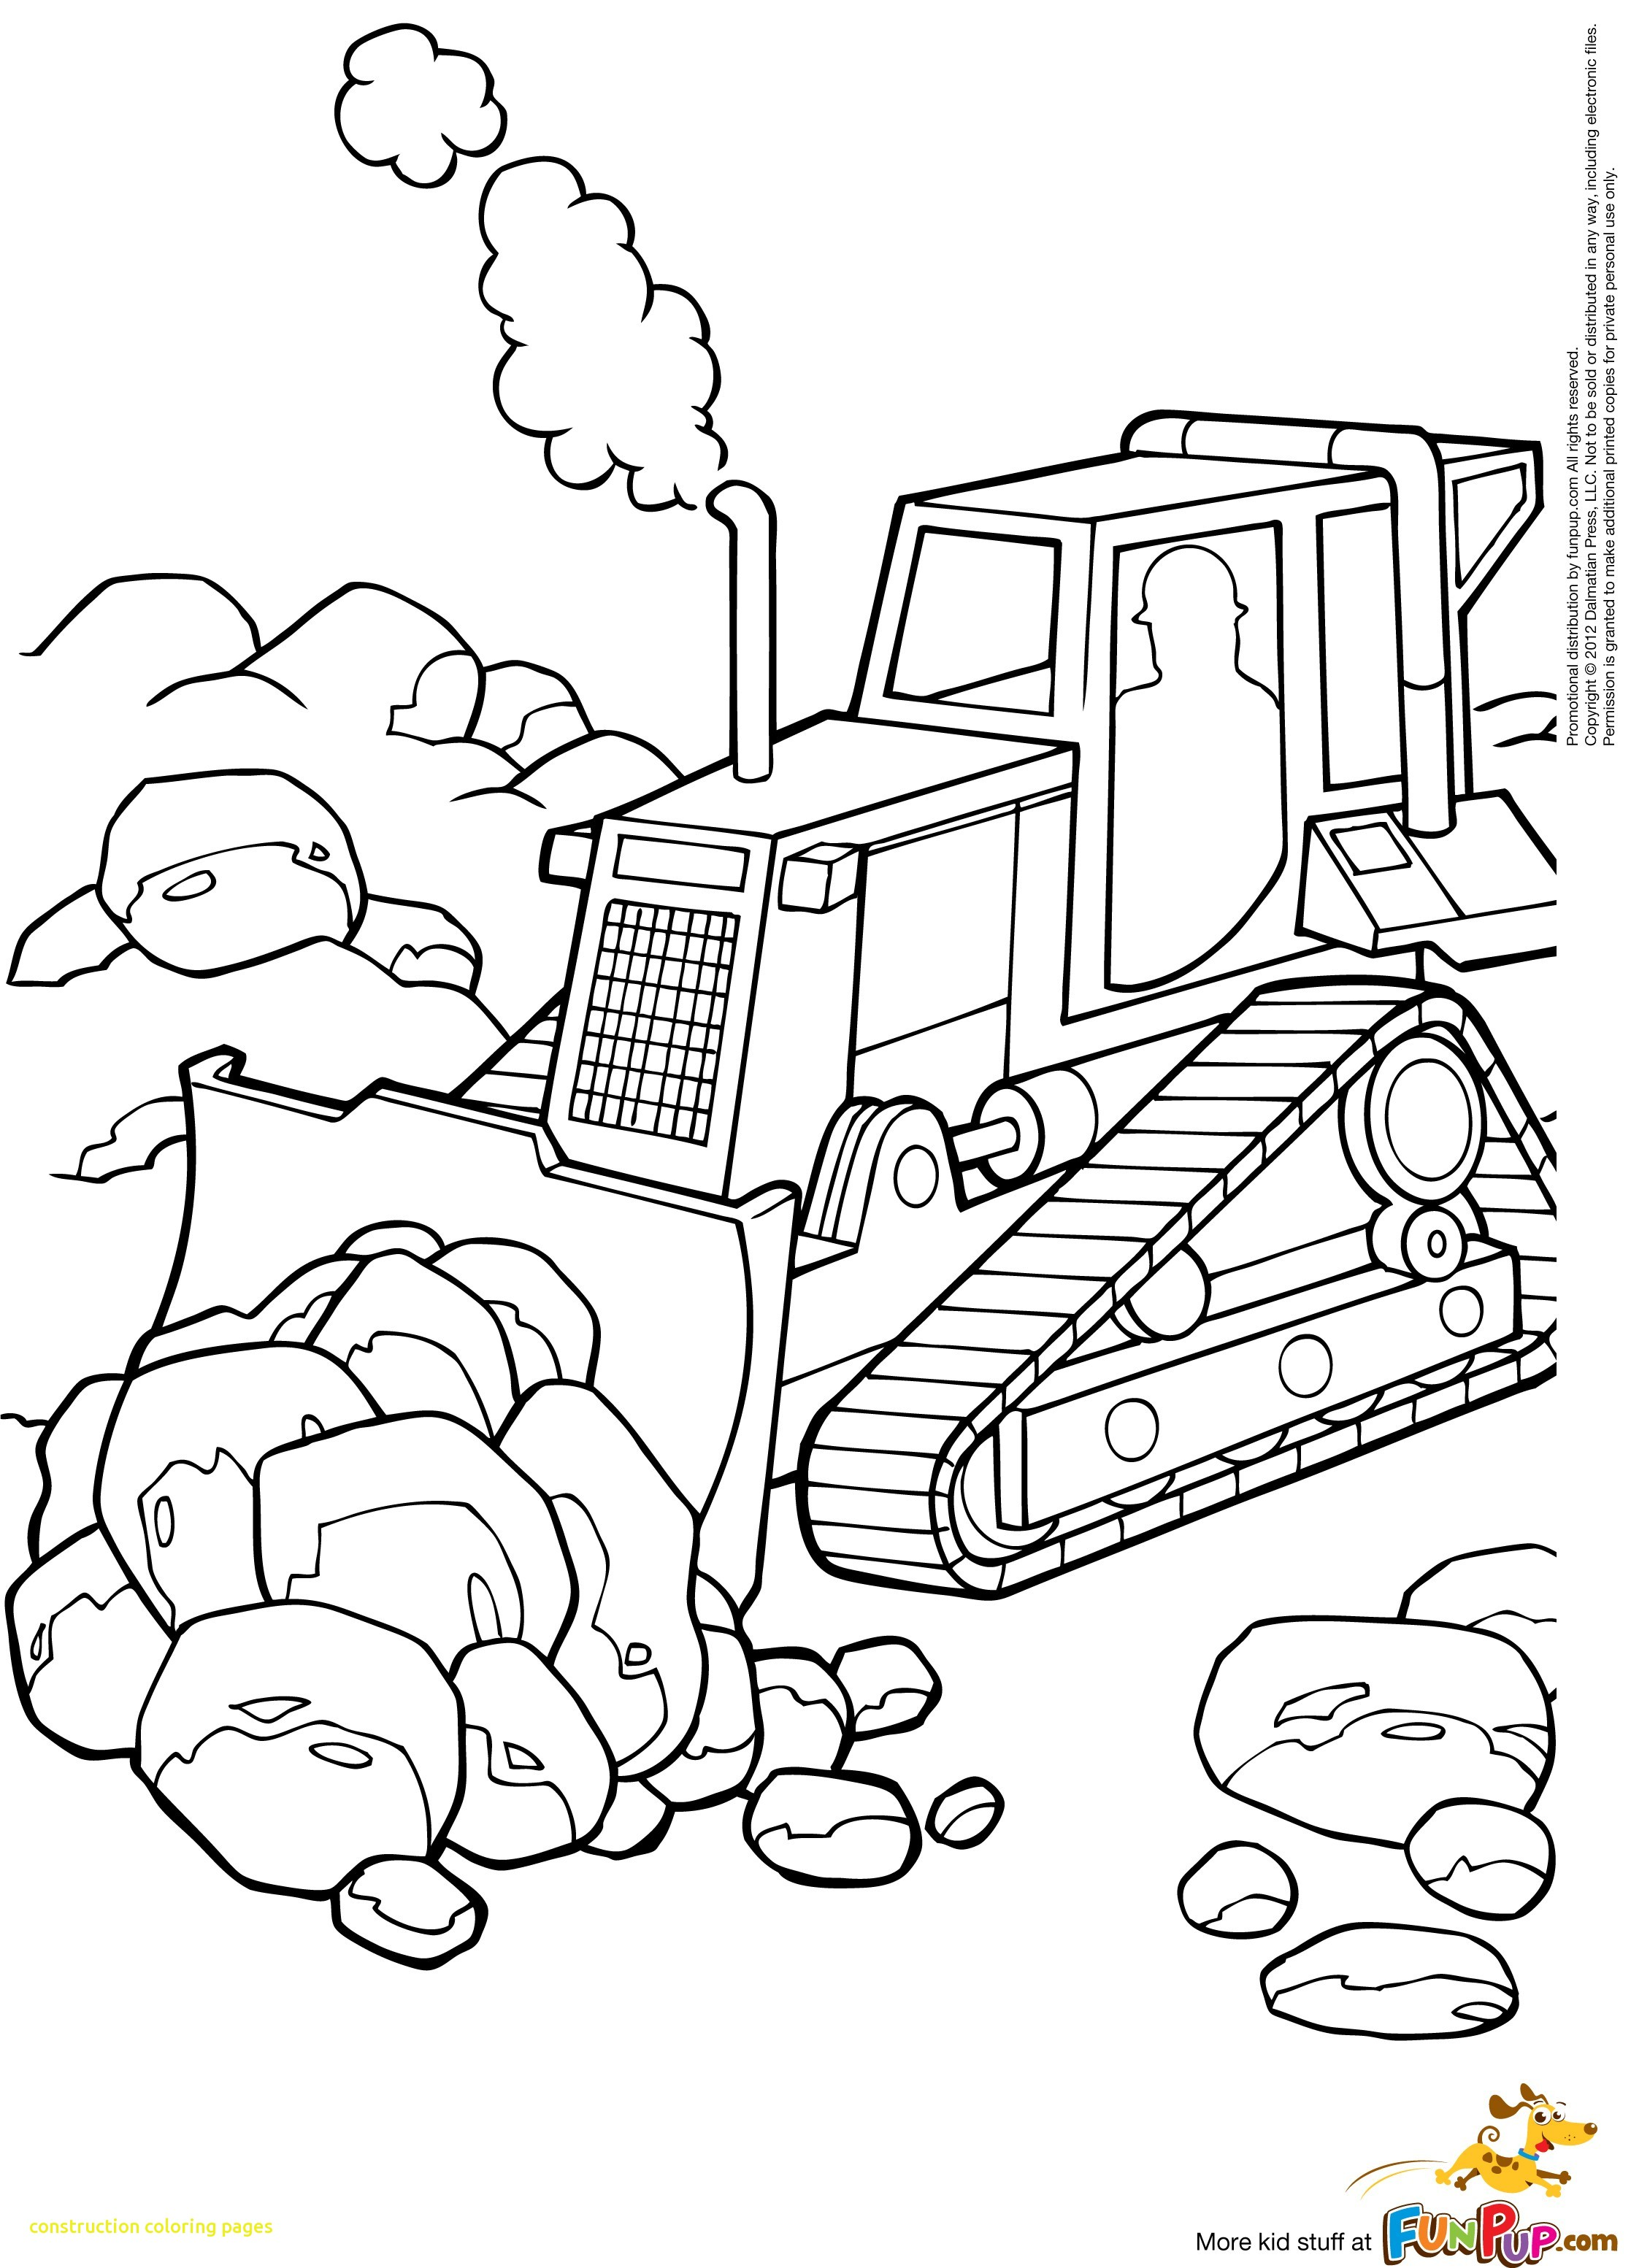 2234x3107 Construction Coloring Pages With Simple Design Construction